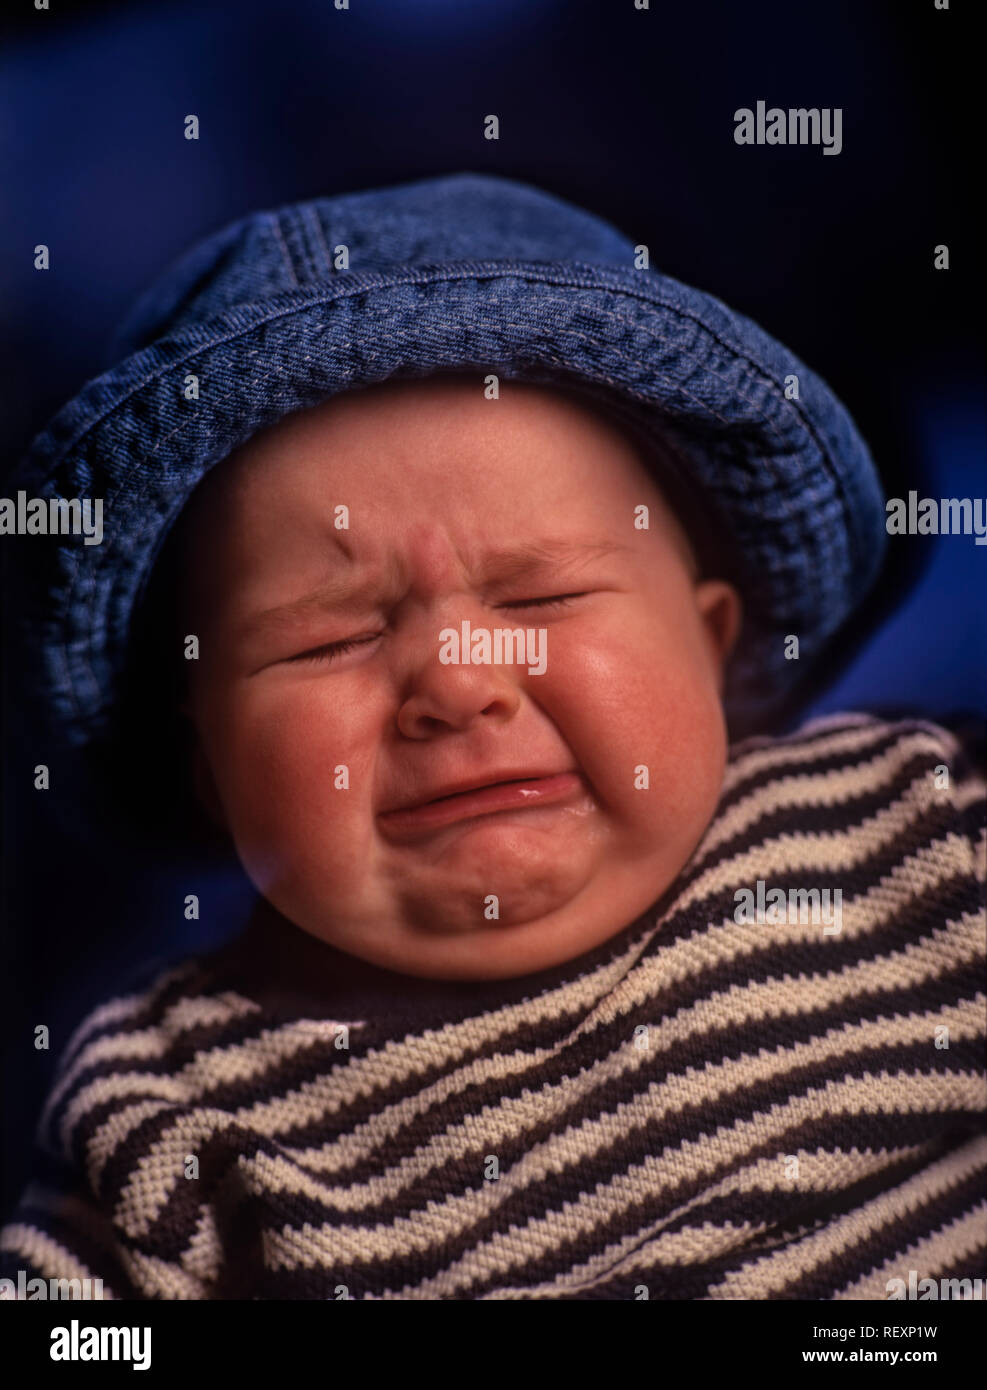 A closeup of an upset and crying child's face wearing a hat - Stock Image